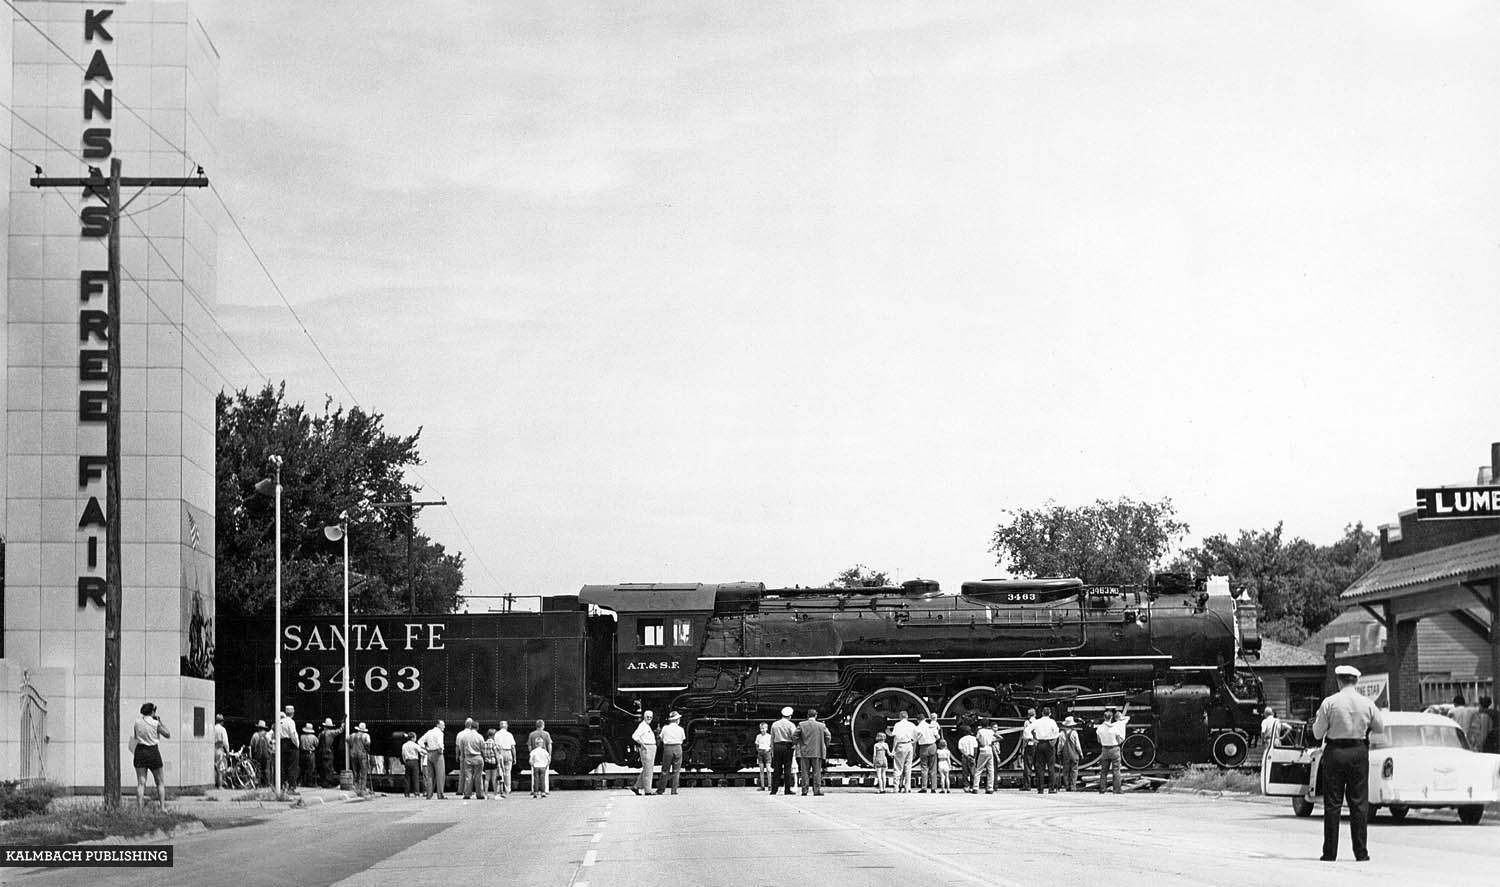 Blocking the road for only 90 minutes the ATSF shoved locomotive 3463 into the Kansas Free Fair grounds using an idler flat car (visible in front of the steam engine) and a diesel-electric switch engine. Image courtesy of Kalmbach Publishing Co.